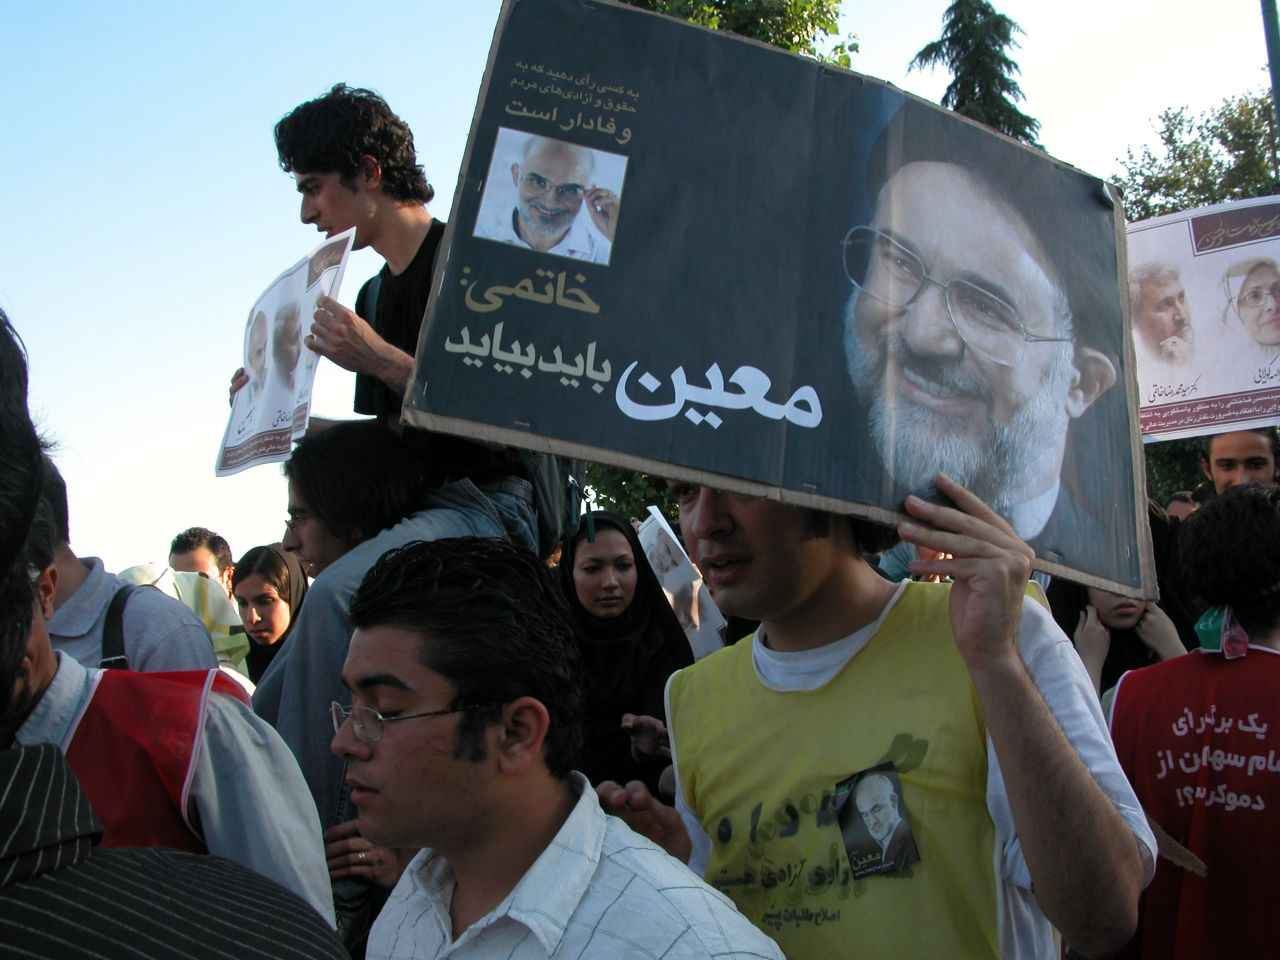 Women and the Islamic Republic: Emancipation or Suppression?